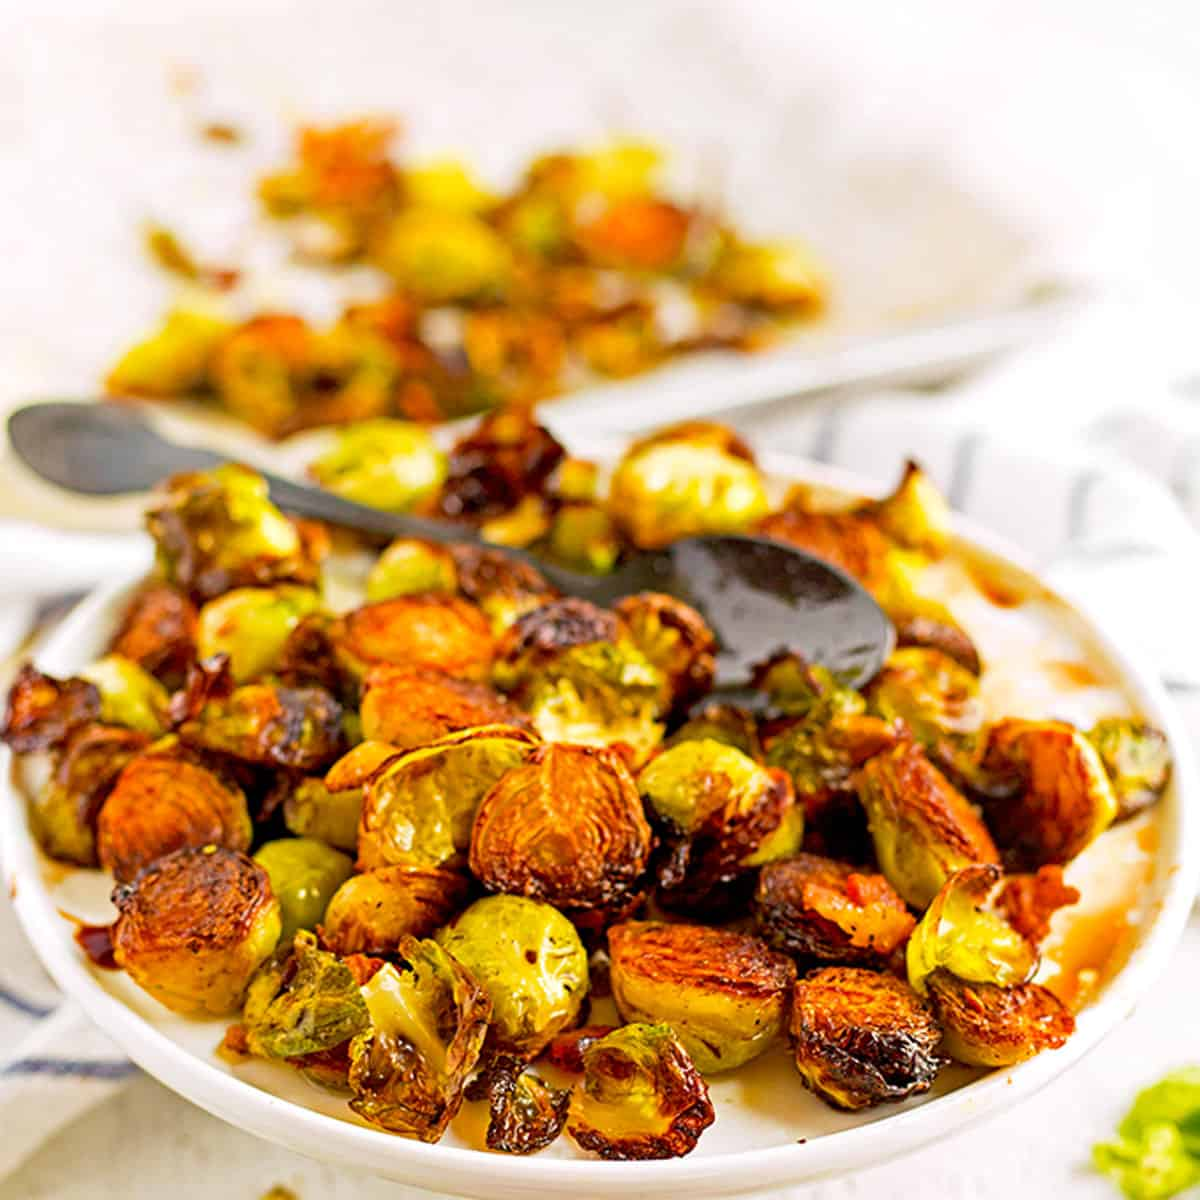 A plate of Brussels sprouts.